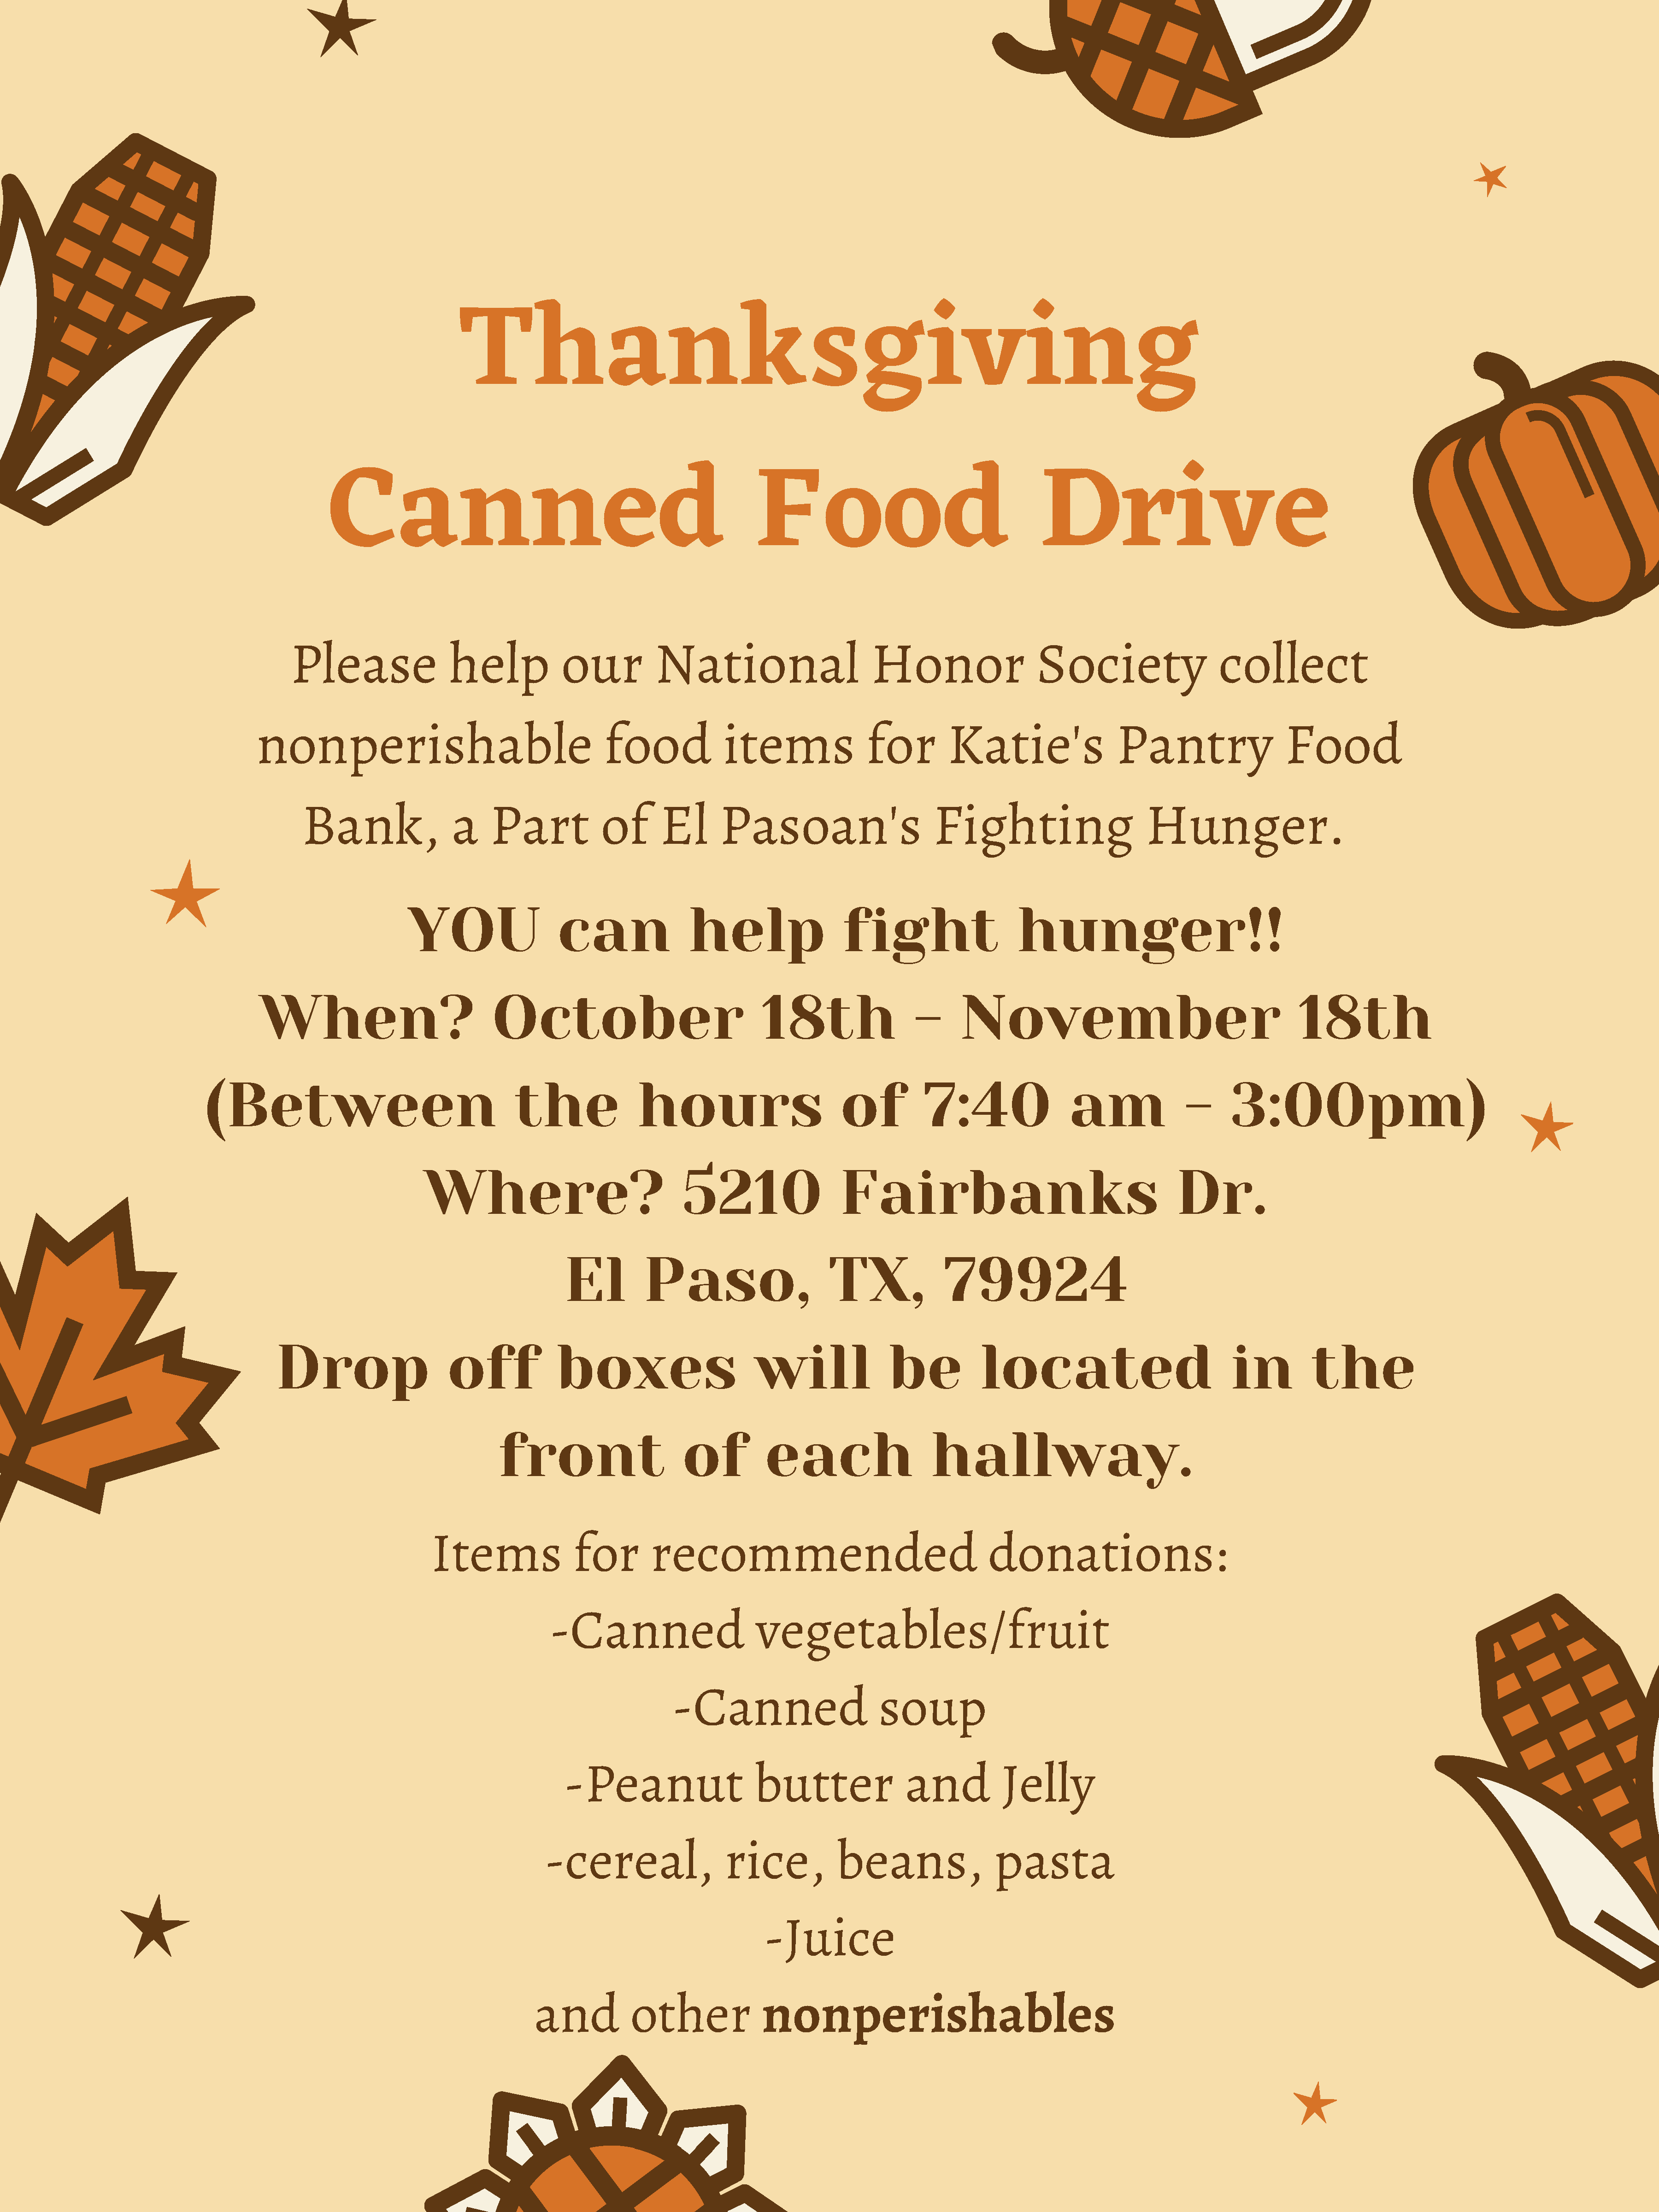 An image of the Thanksgiving Canned Food Drive flyer